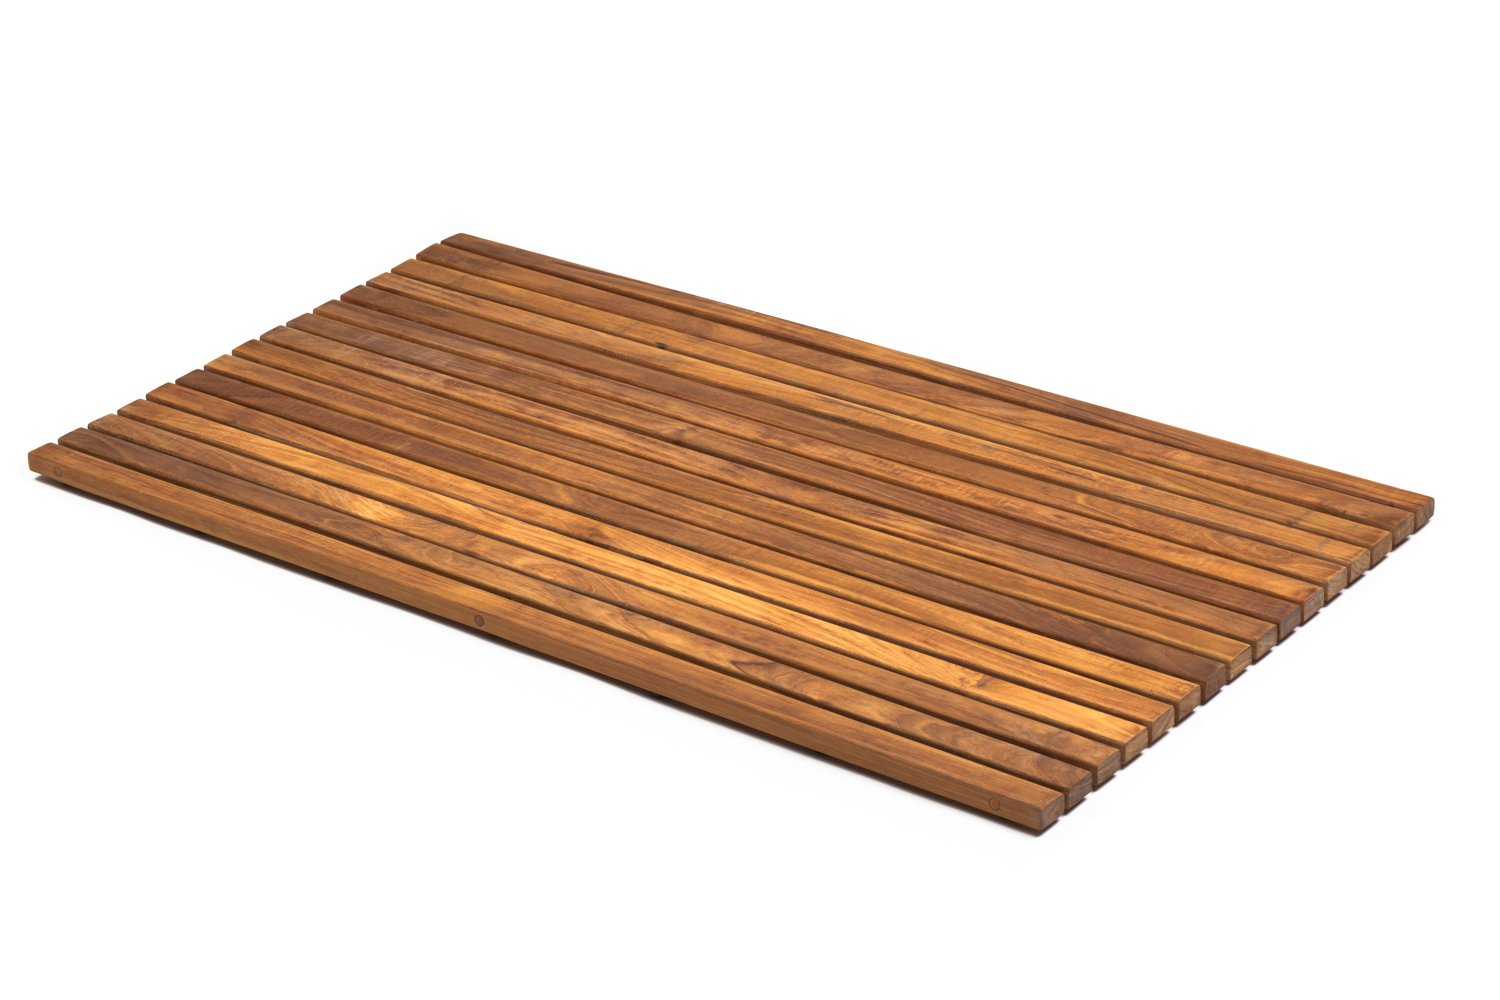 Asinox TEK4H8100 Slatted Wood Shower Duckboard Brown 86 x 66 x 2.5 cm